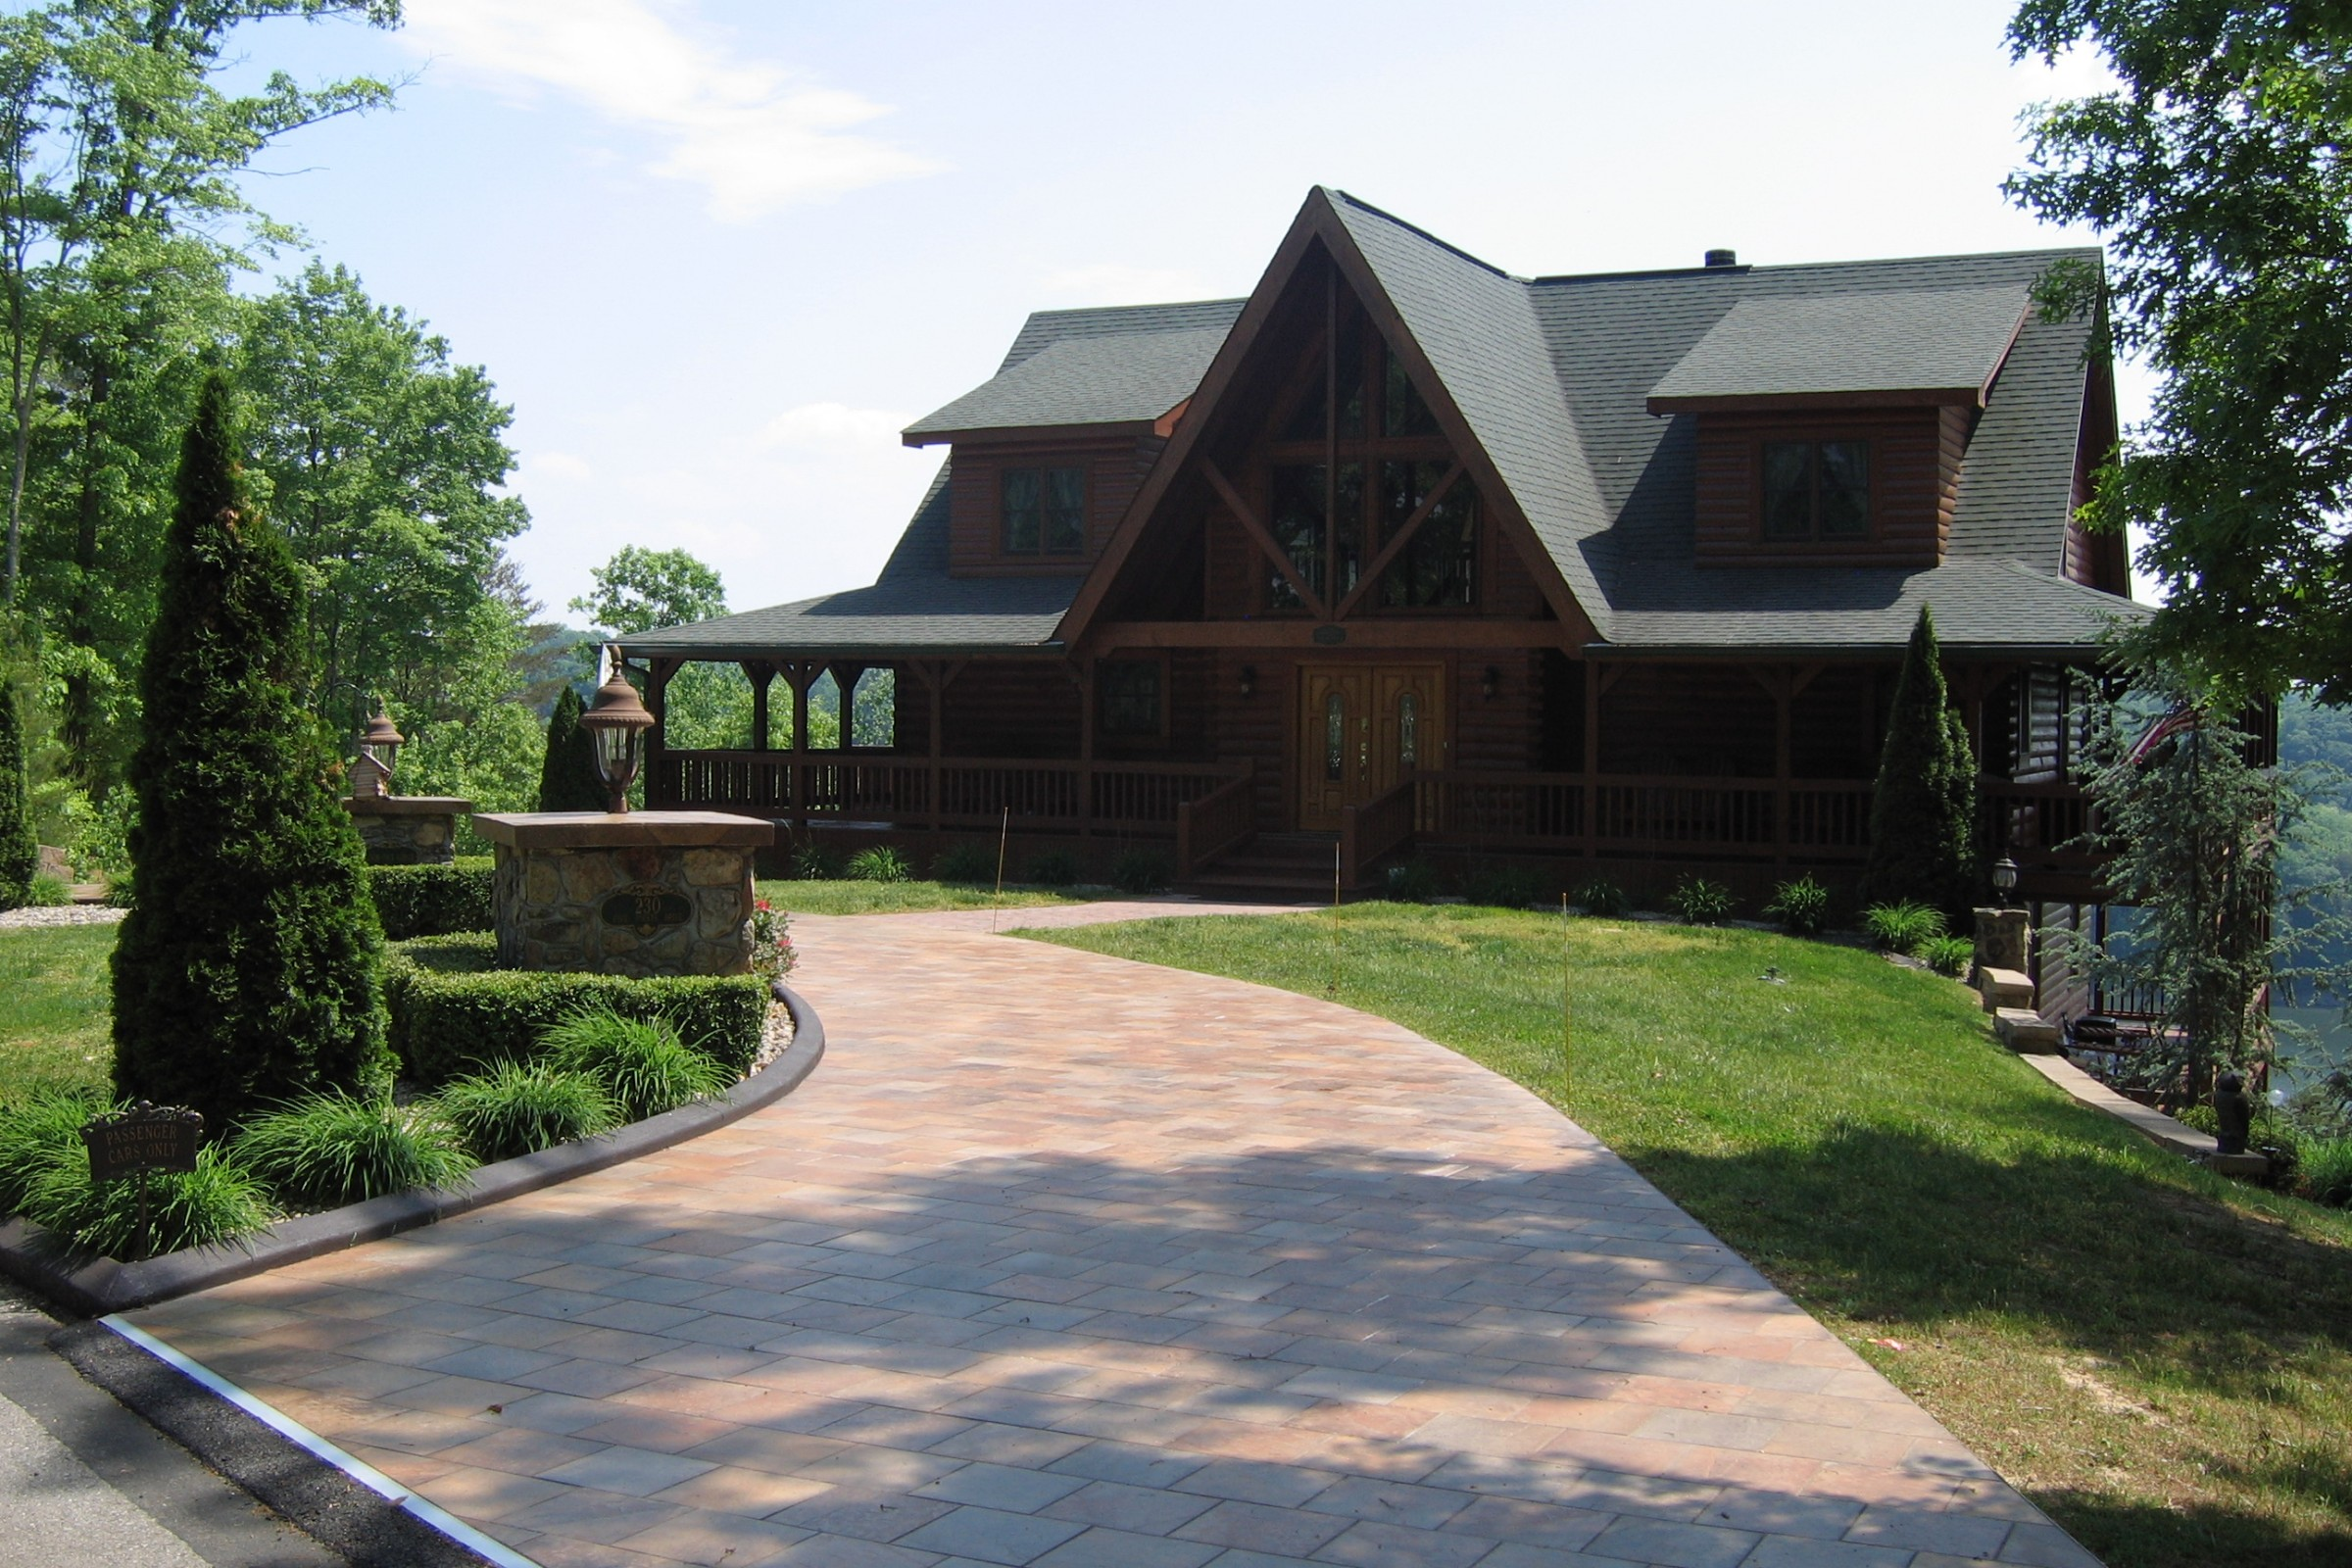 Peachy Look Out Lodge Lakefront Accommodations Lake Cumberland Interior Design Ideas Clesiryabchikinfo